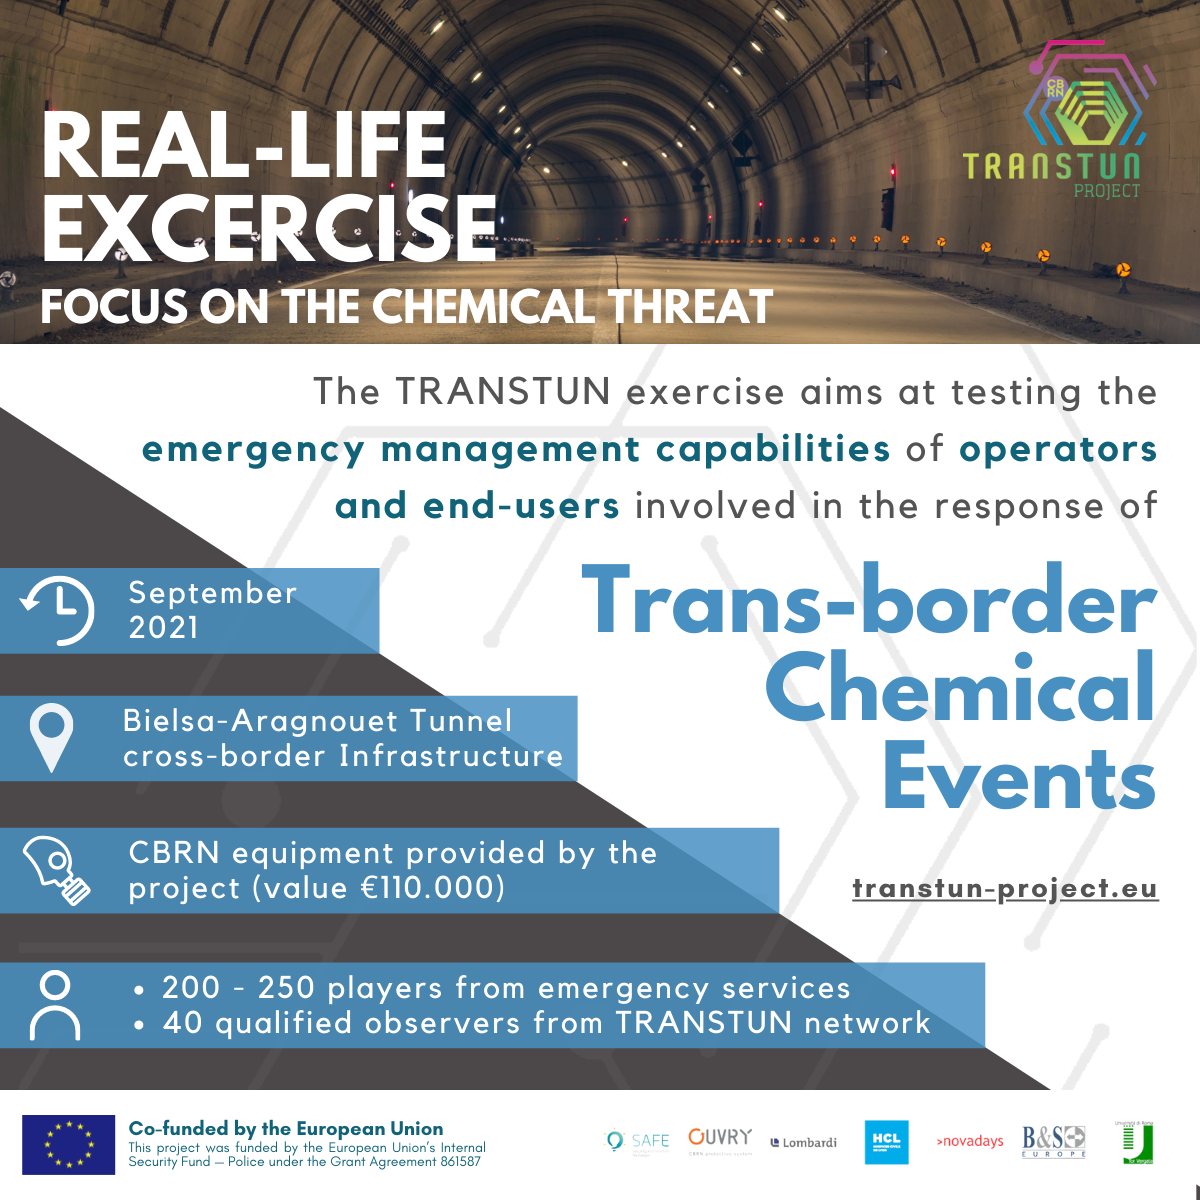 TRANSTUN's Real-Life Exercise (September 2021 - YOU CAN PARTICIPATE))